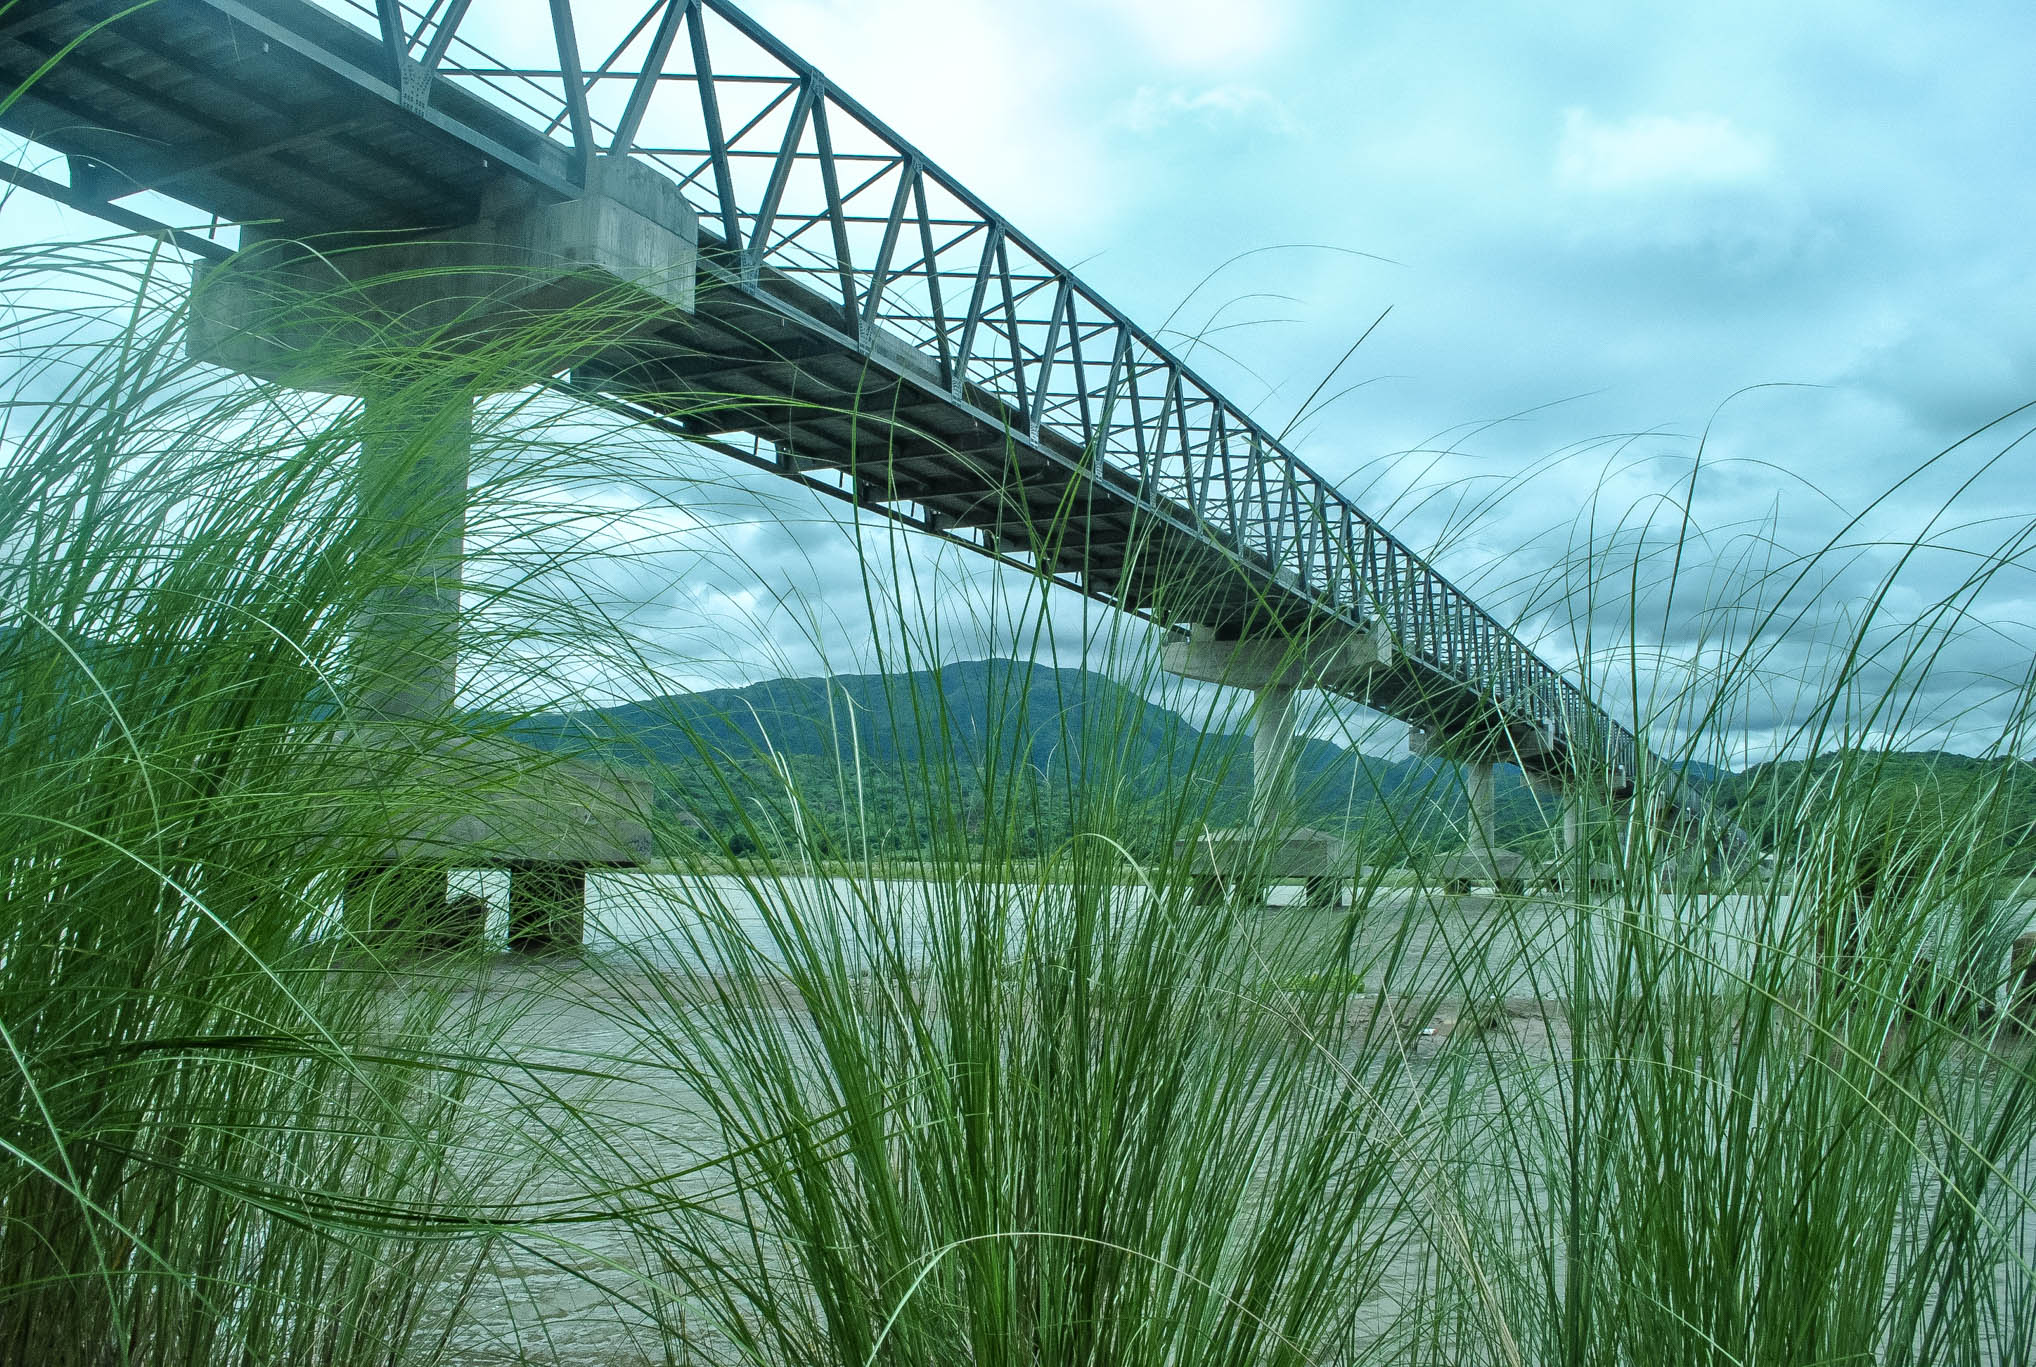 ABRA BRIDGE 2 (22 of 1)